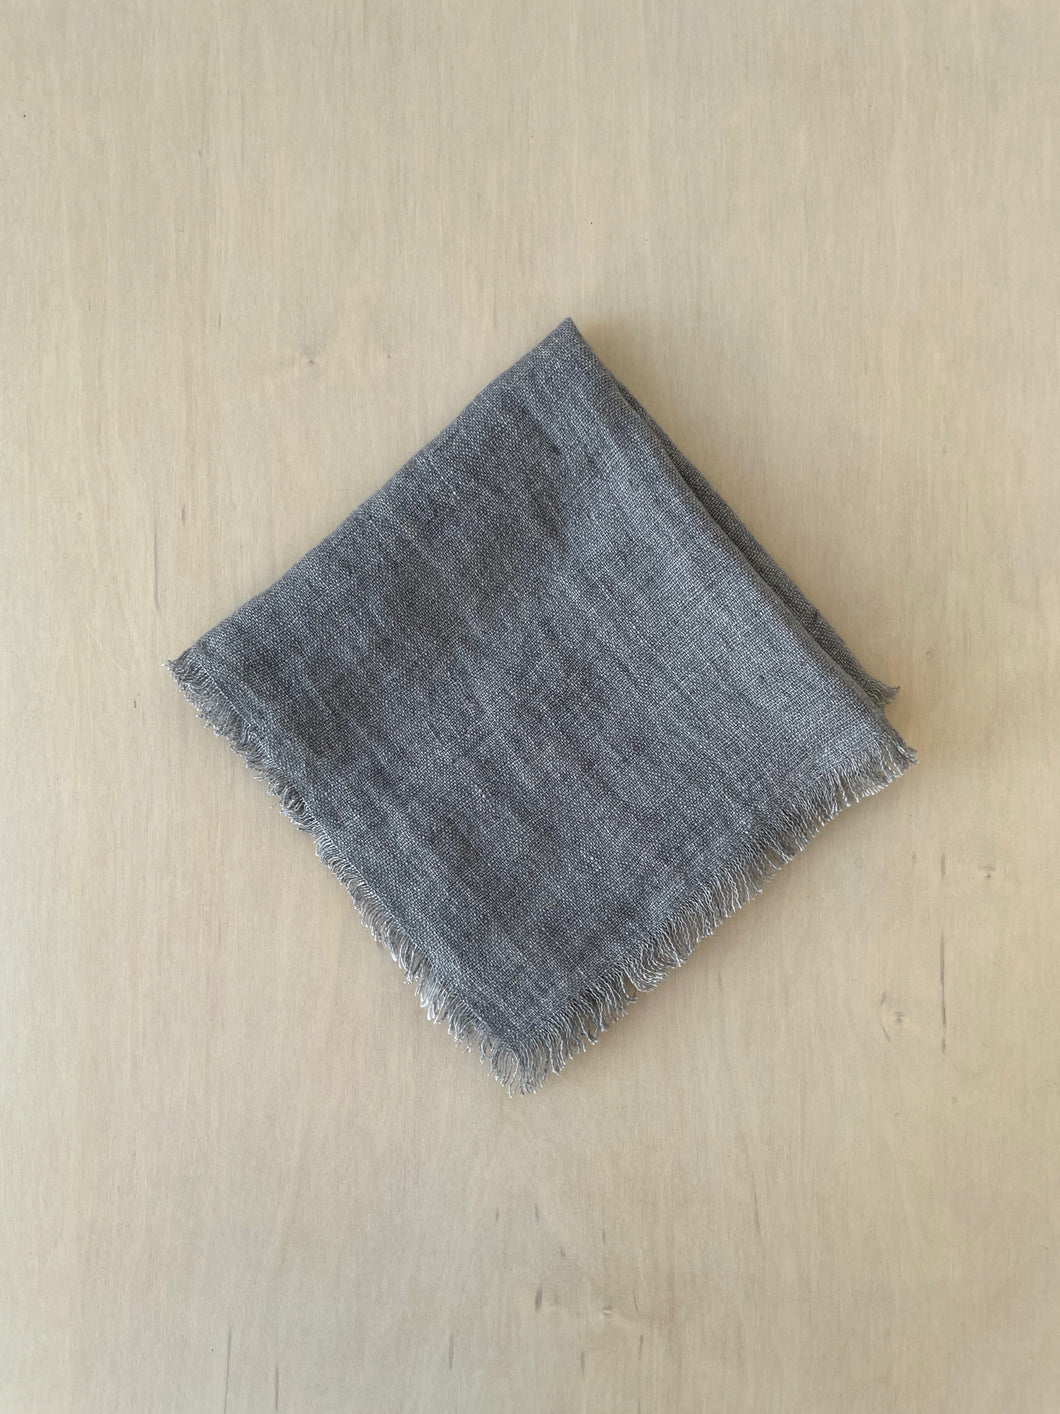 Stonewashed Linen Cocktail Napkin in Oyster